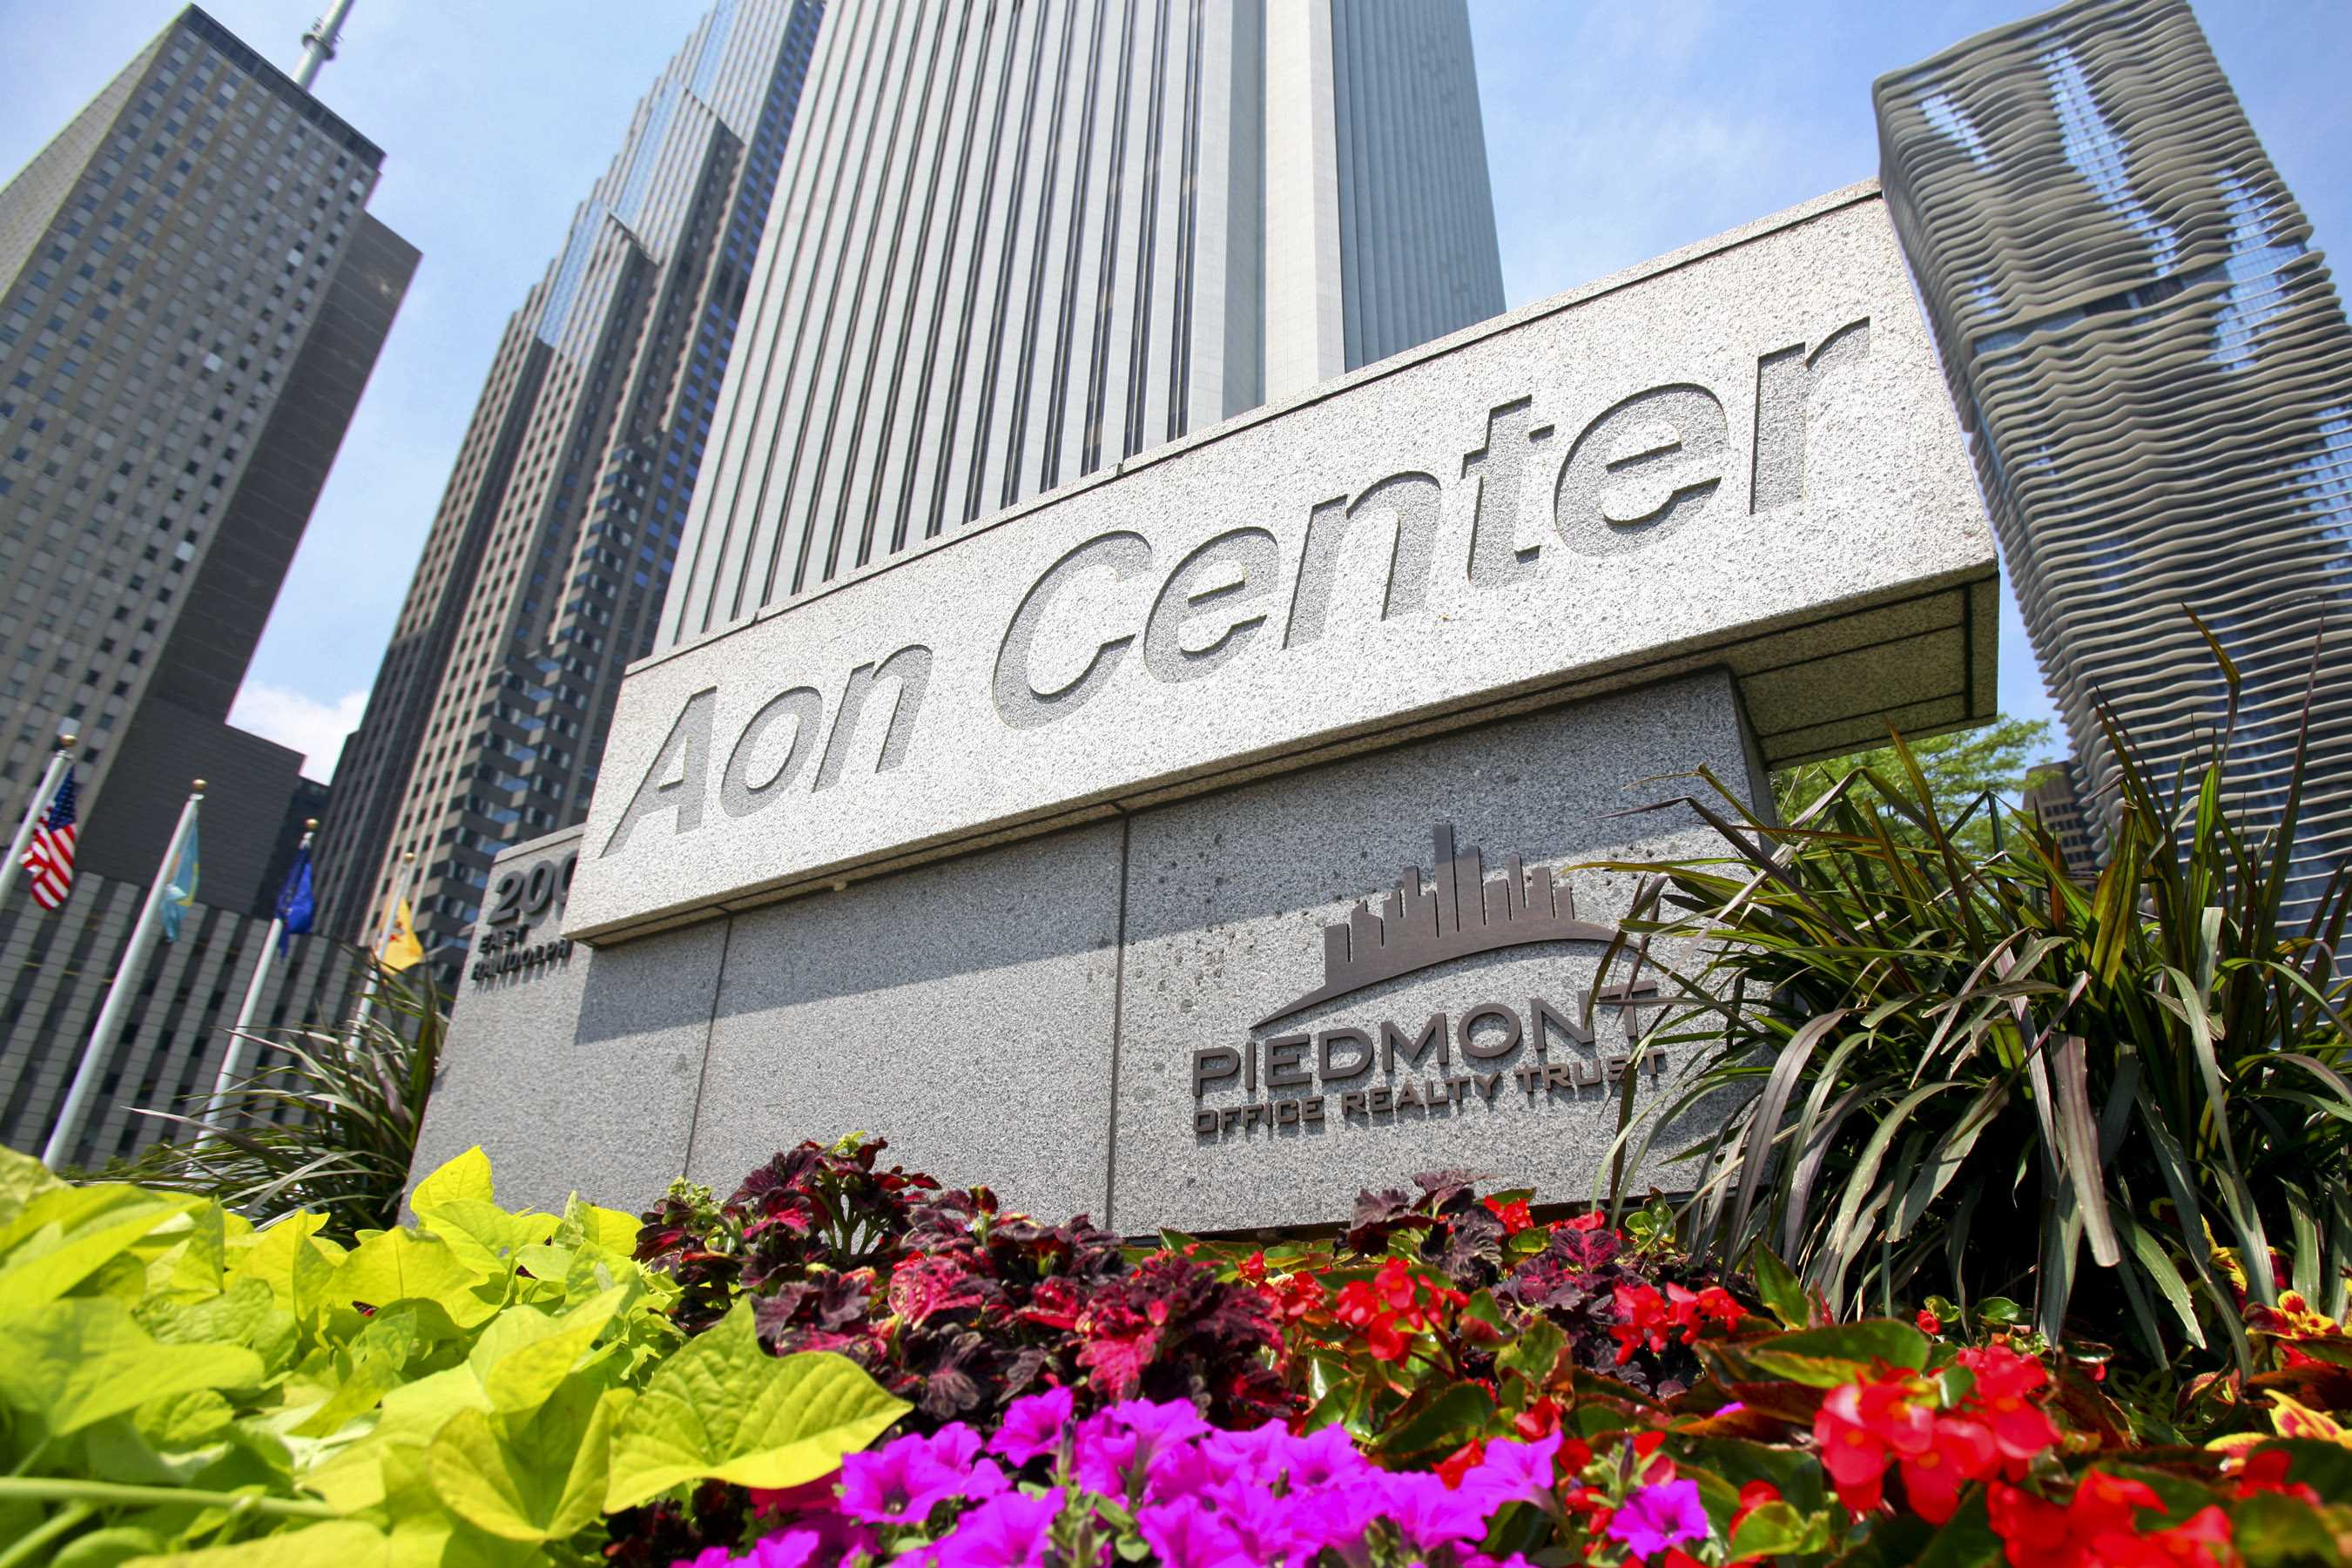 Aon moving headquarters to London